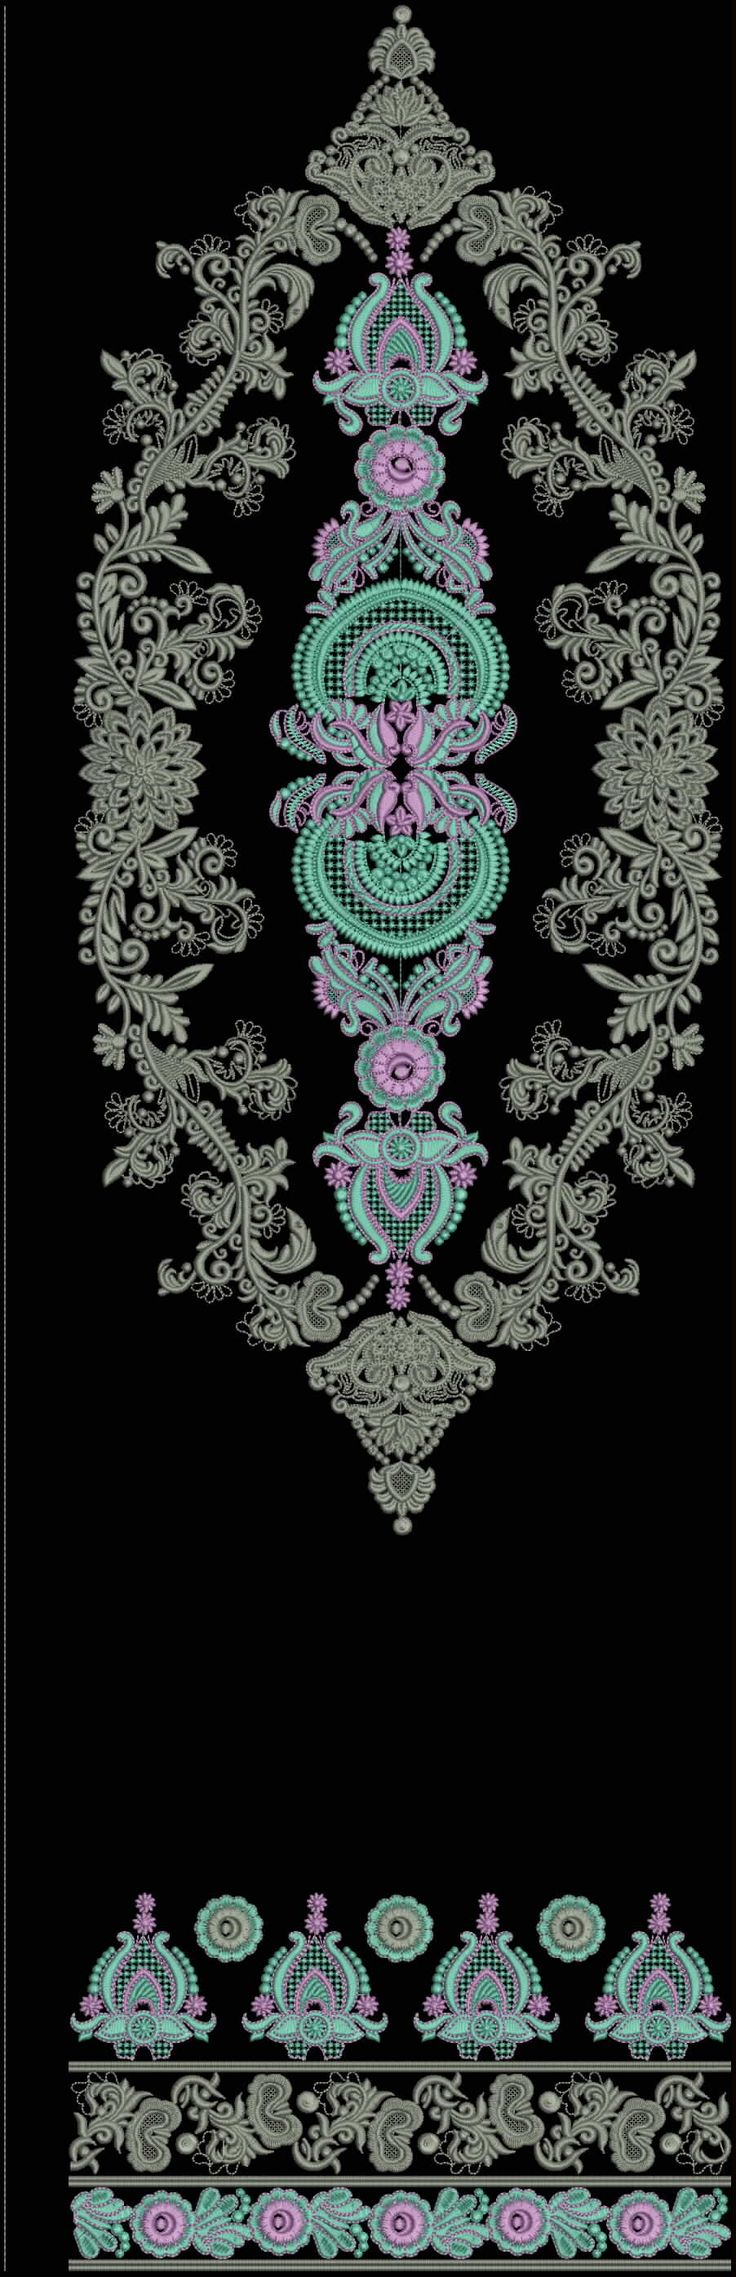 Latest Embroidery Designs For Sale, If U Want Embroidery Designs Plz Contact (Khalid Mahmood, +92-300-9406667) www.embroiderydesignss.blogspot.com Design# Sonas2-B